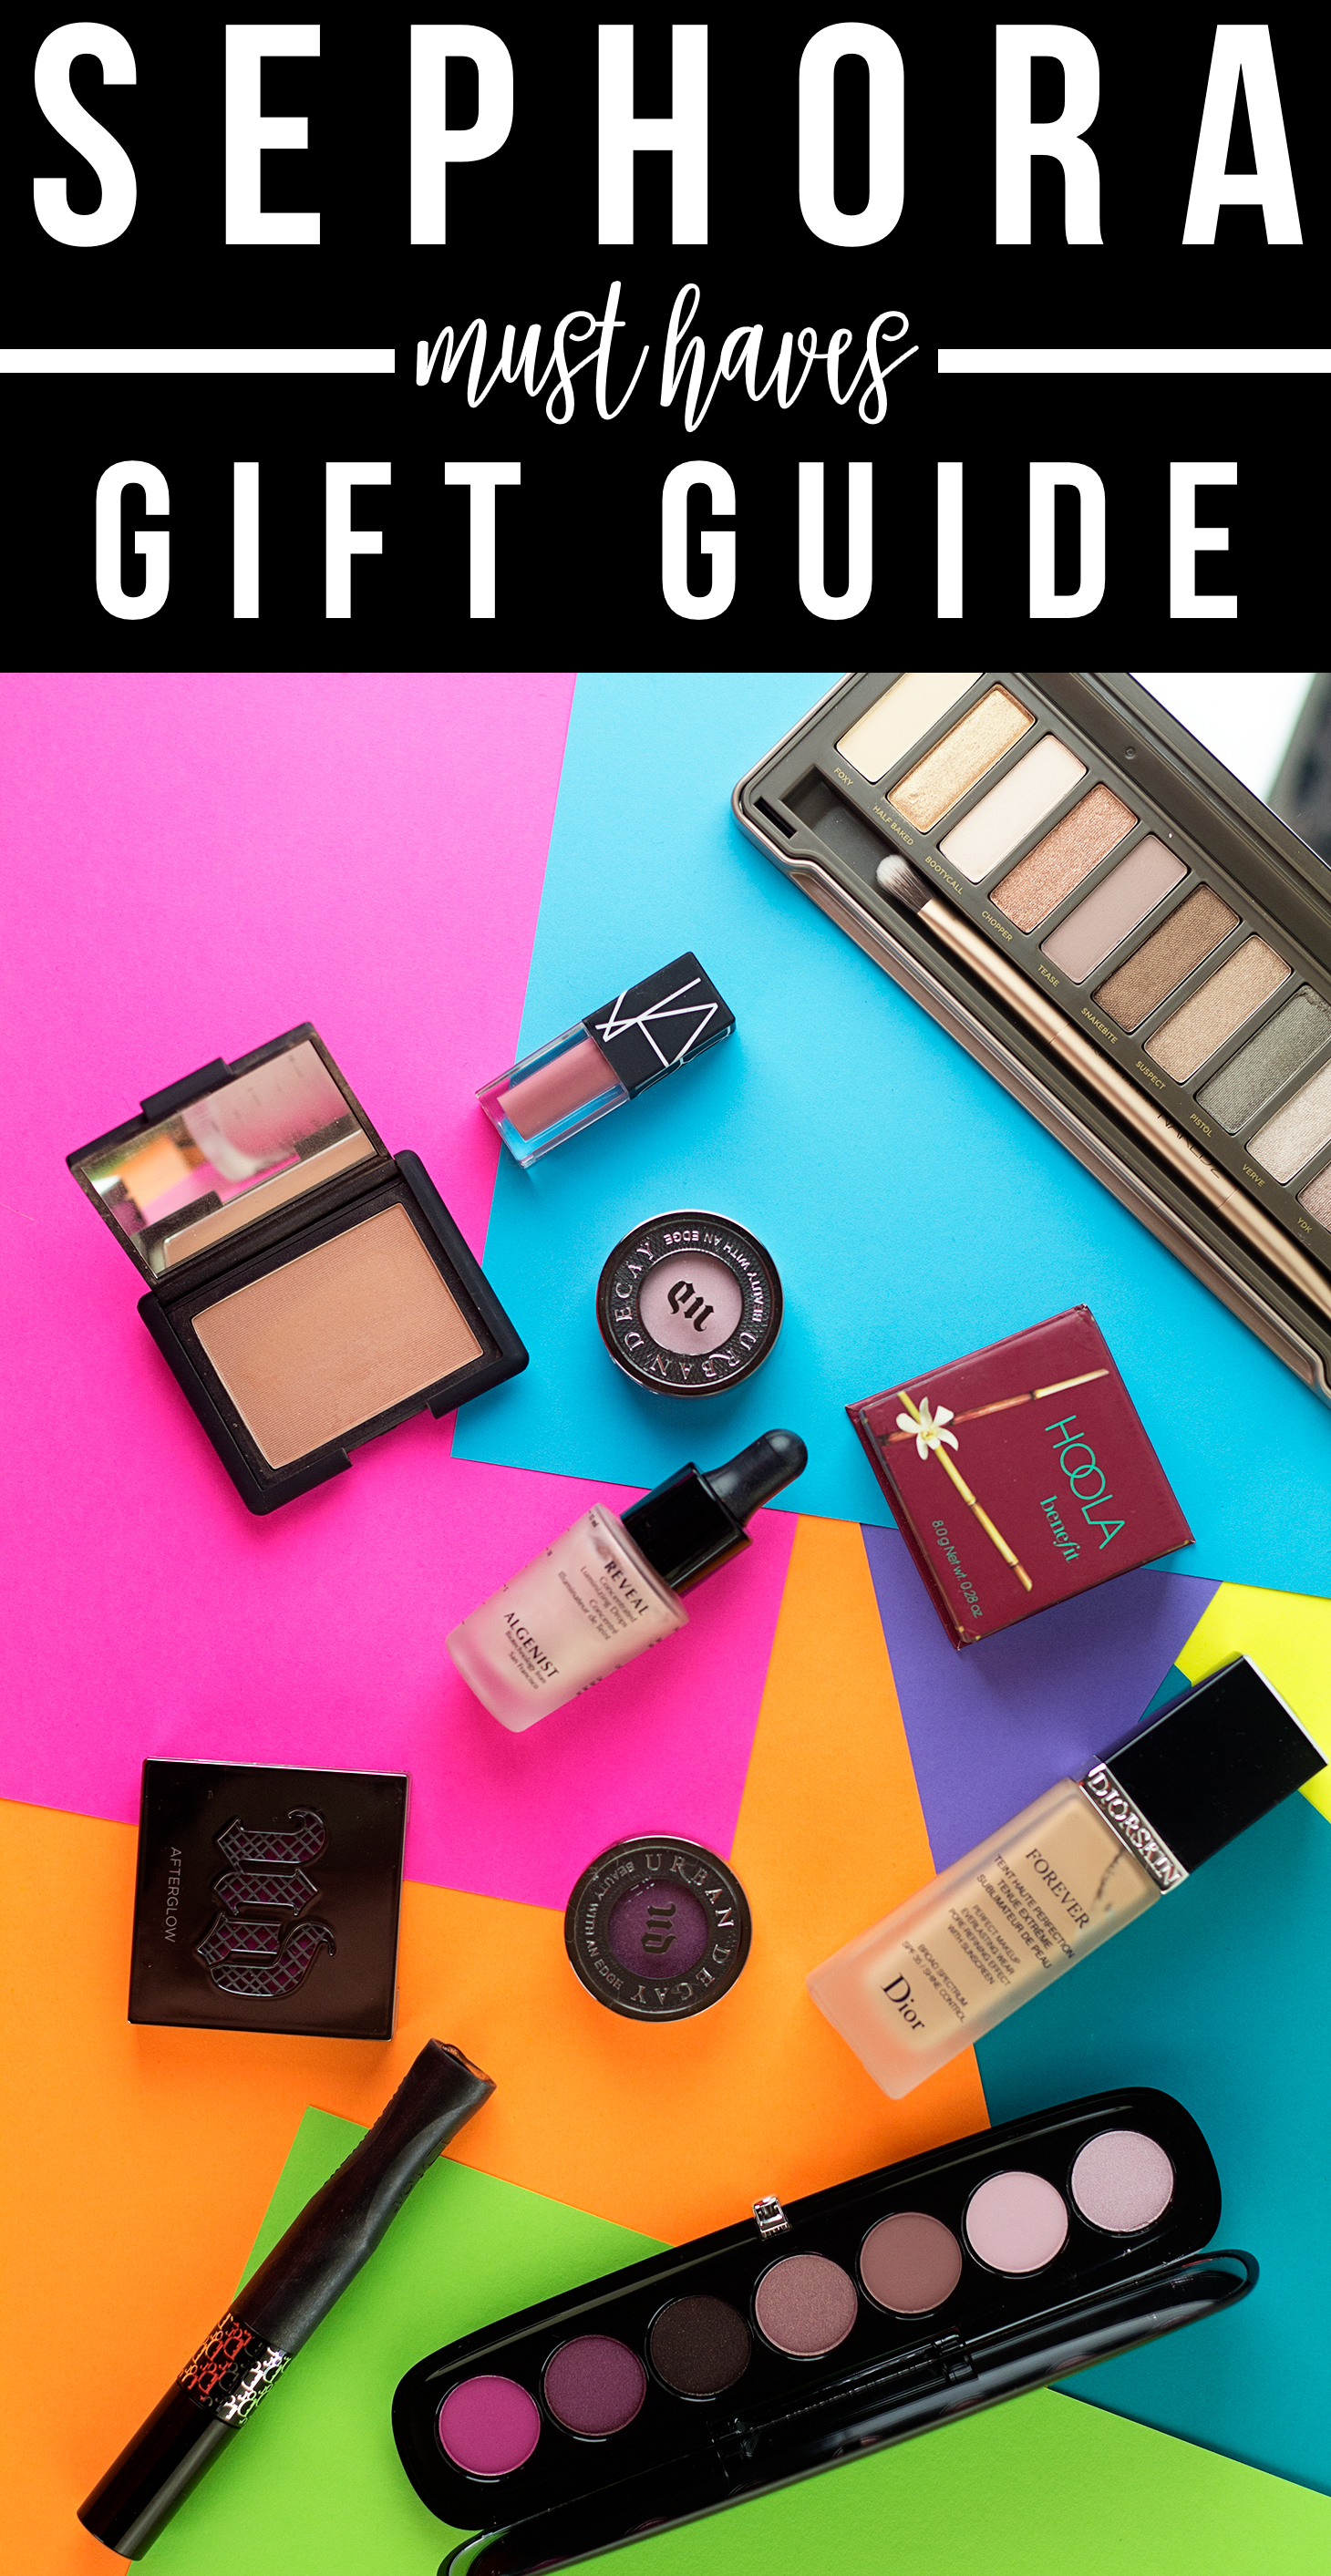 Sephora Must Haves Gift Guide Sephora, Makeup tools